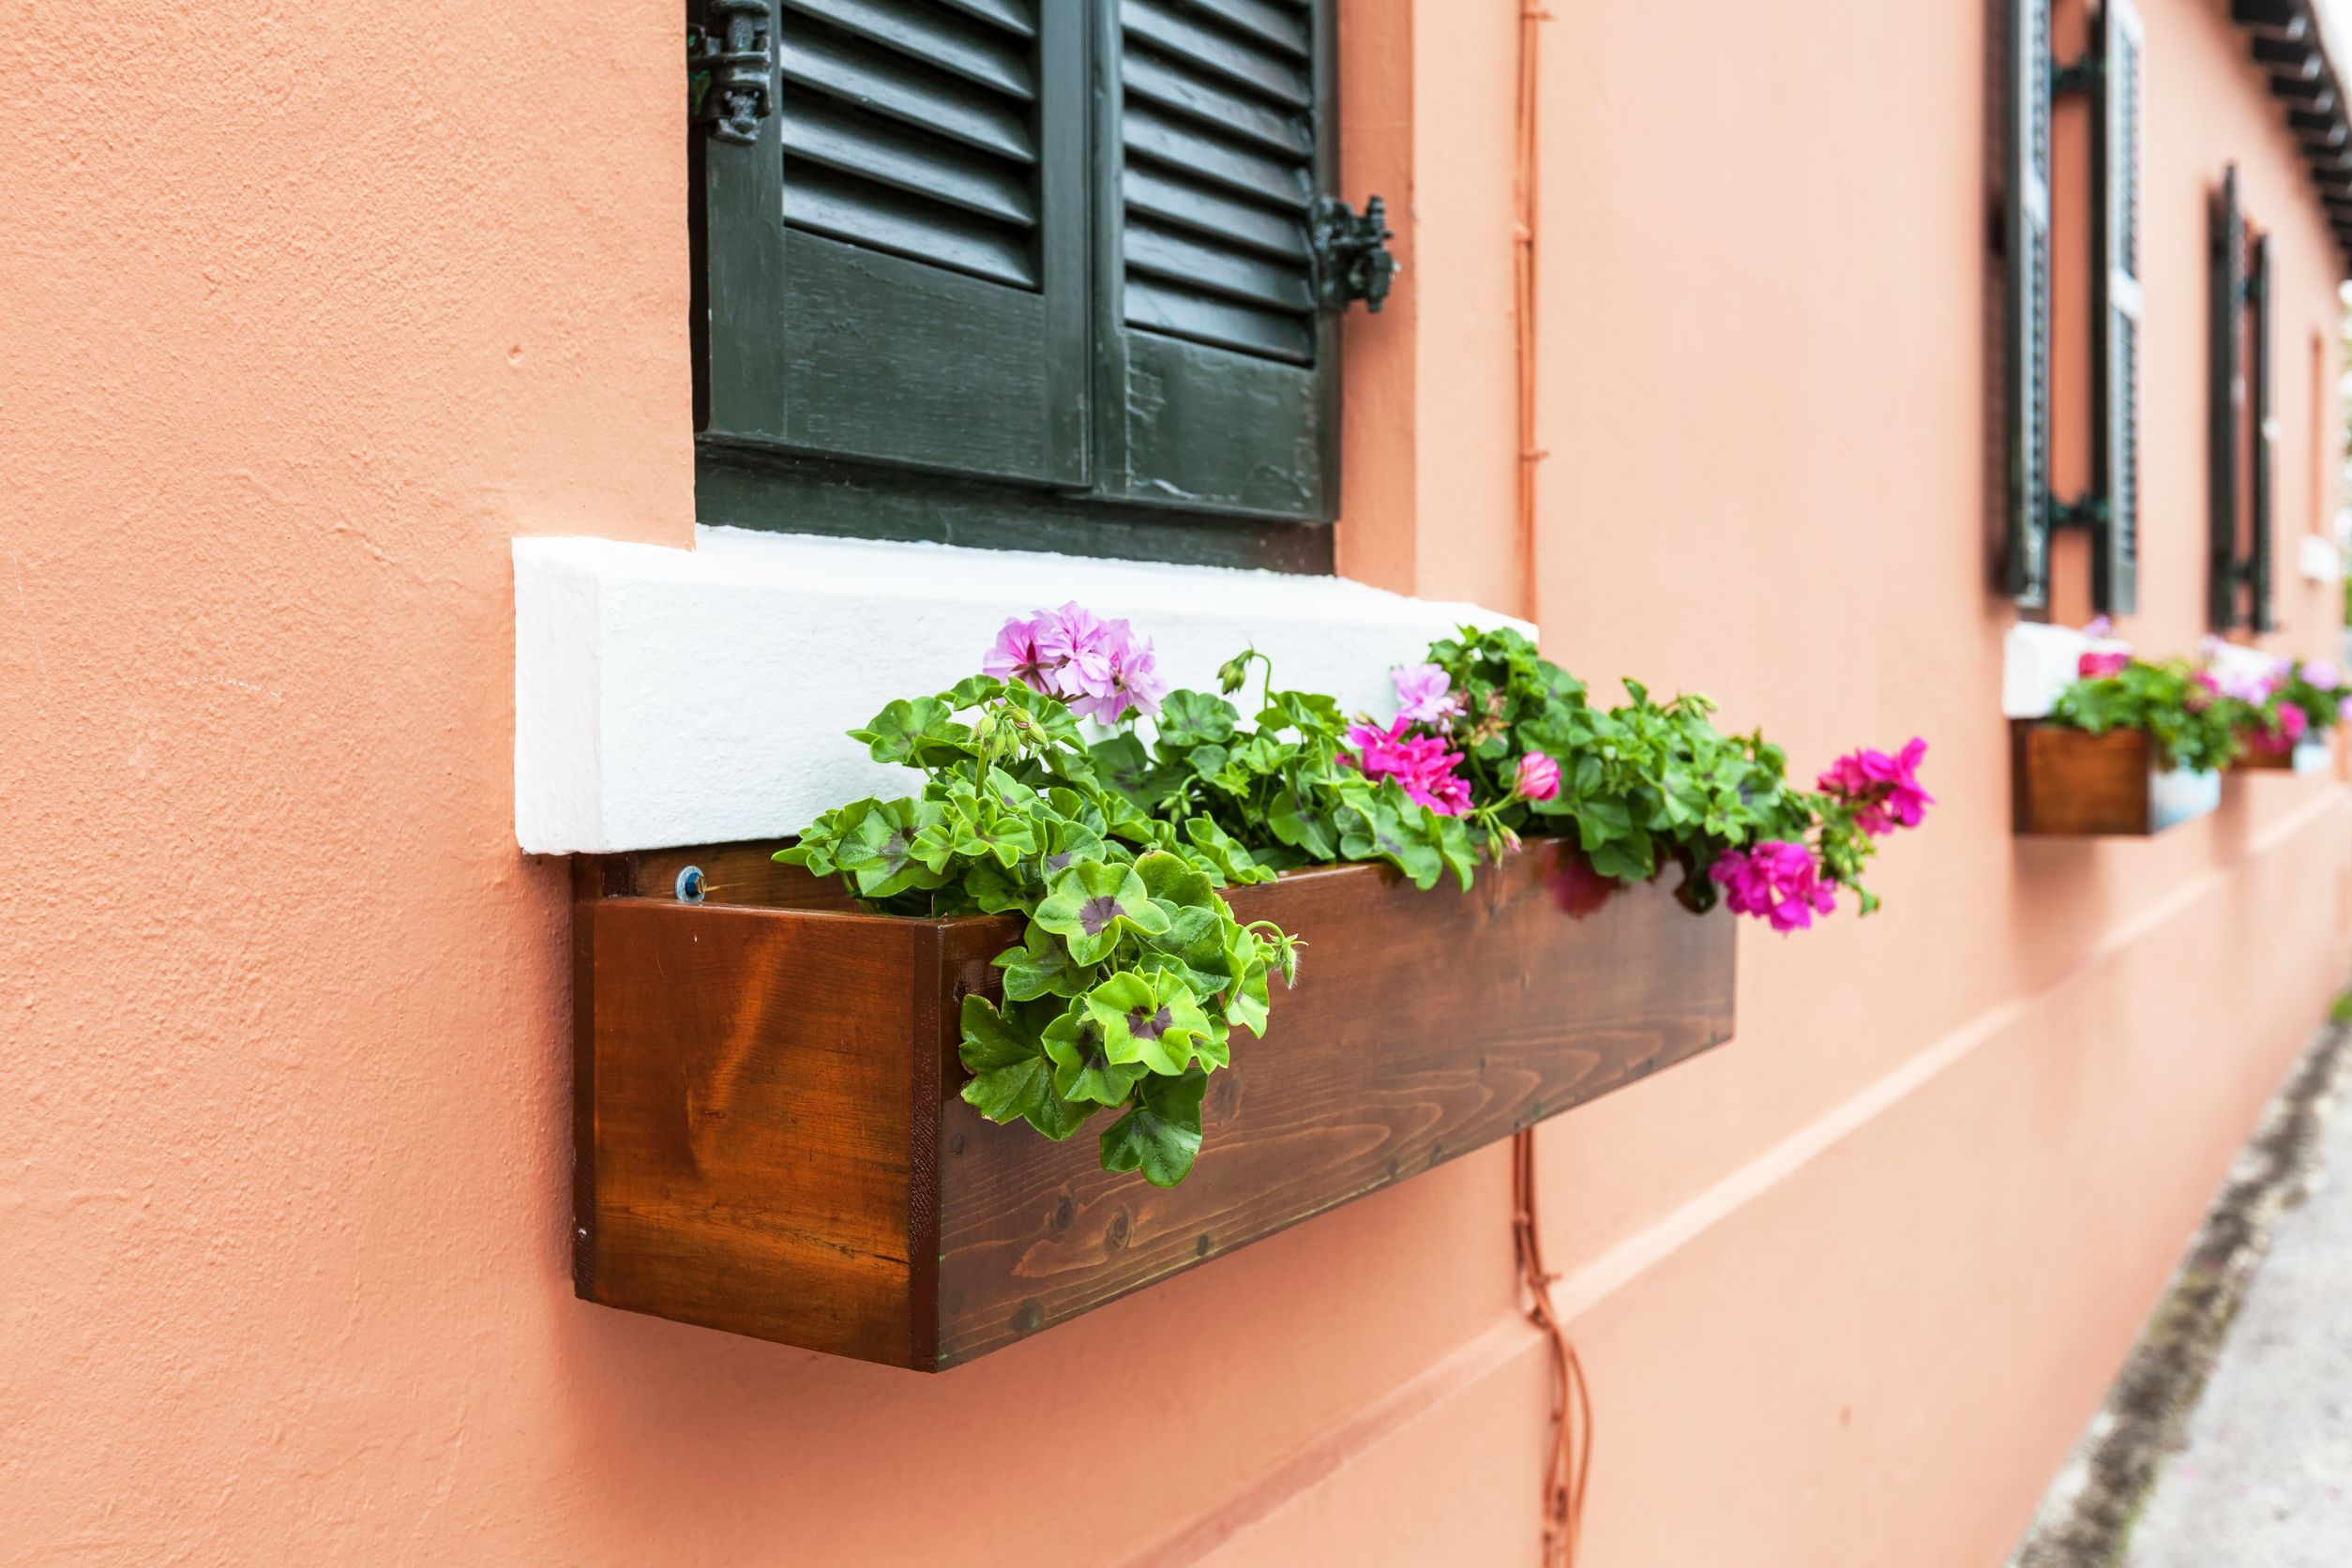 window well boxes